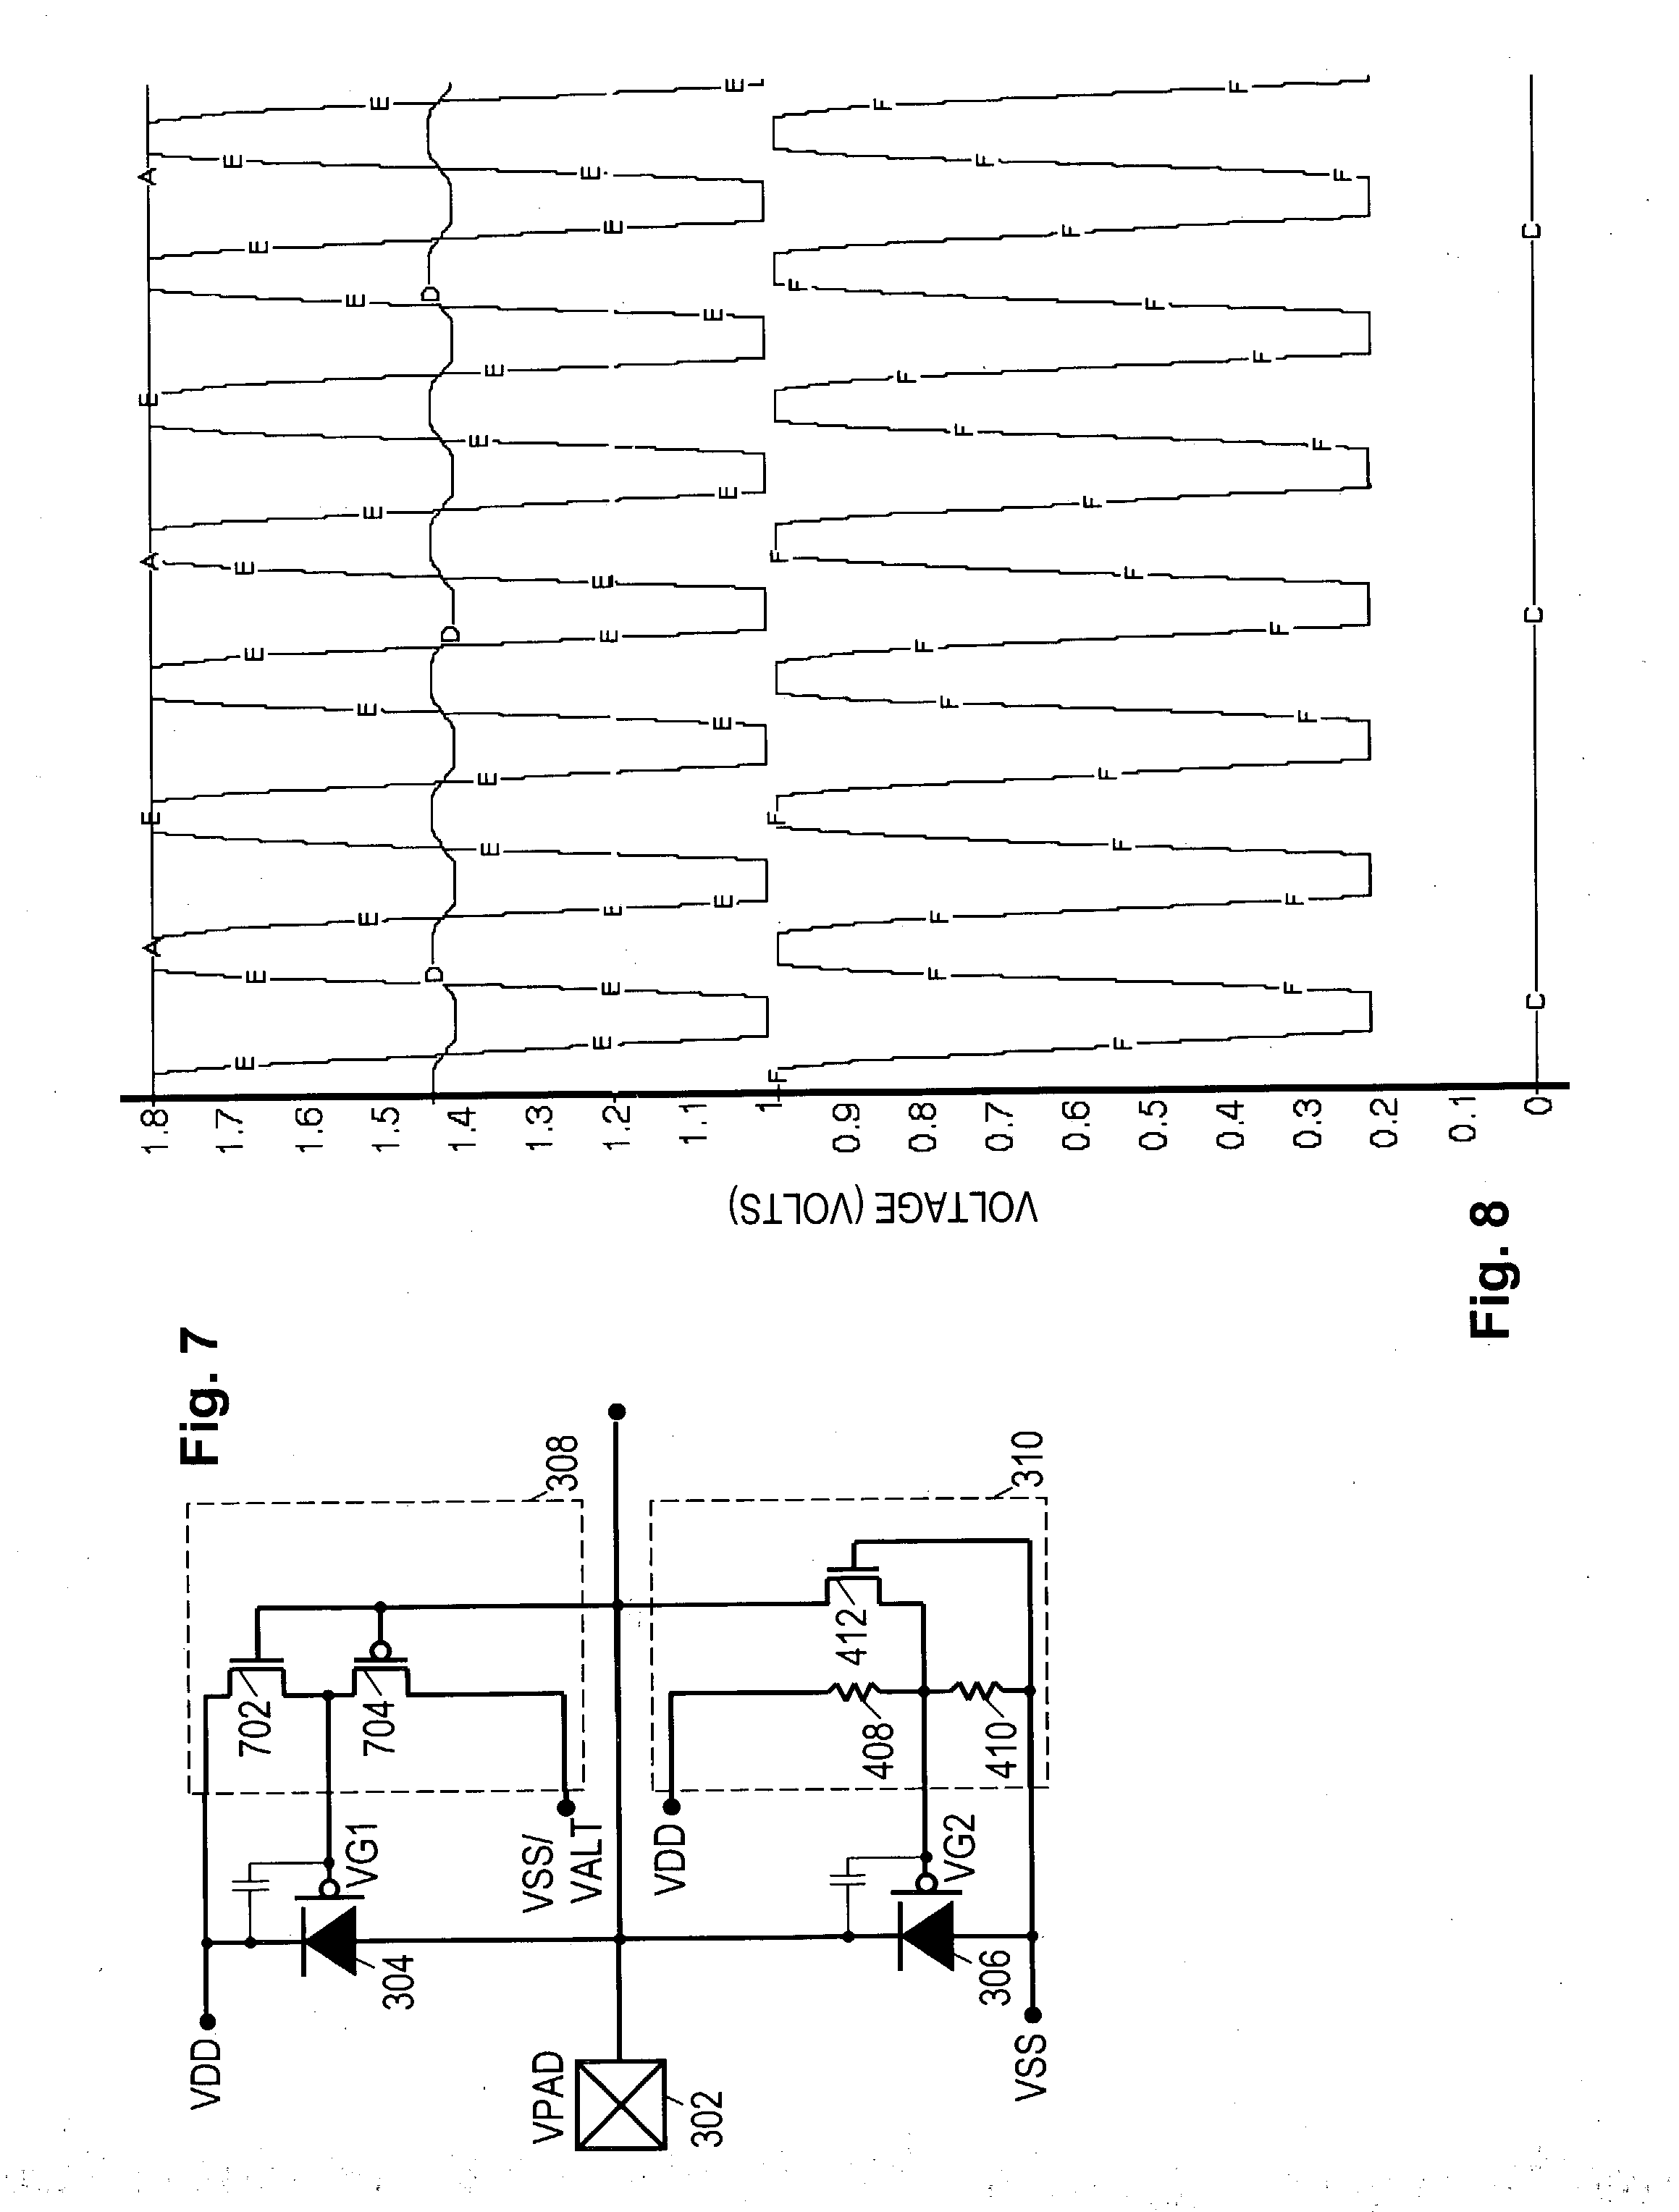 Patent Us20040240127 Gated Diode Overvoltage Protection Google Circuit Symbol With Anode Cathode Labeled Drawing